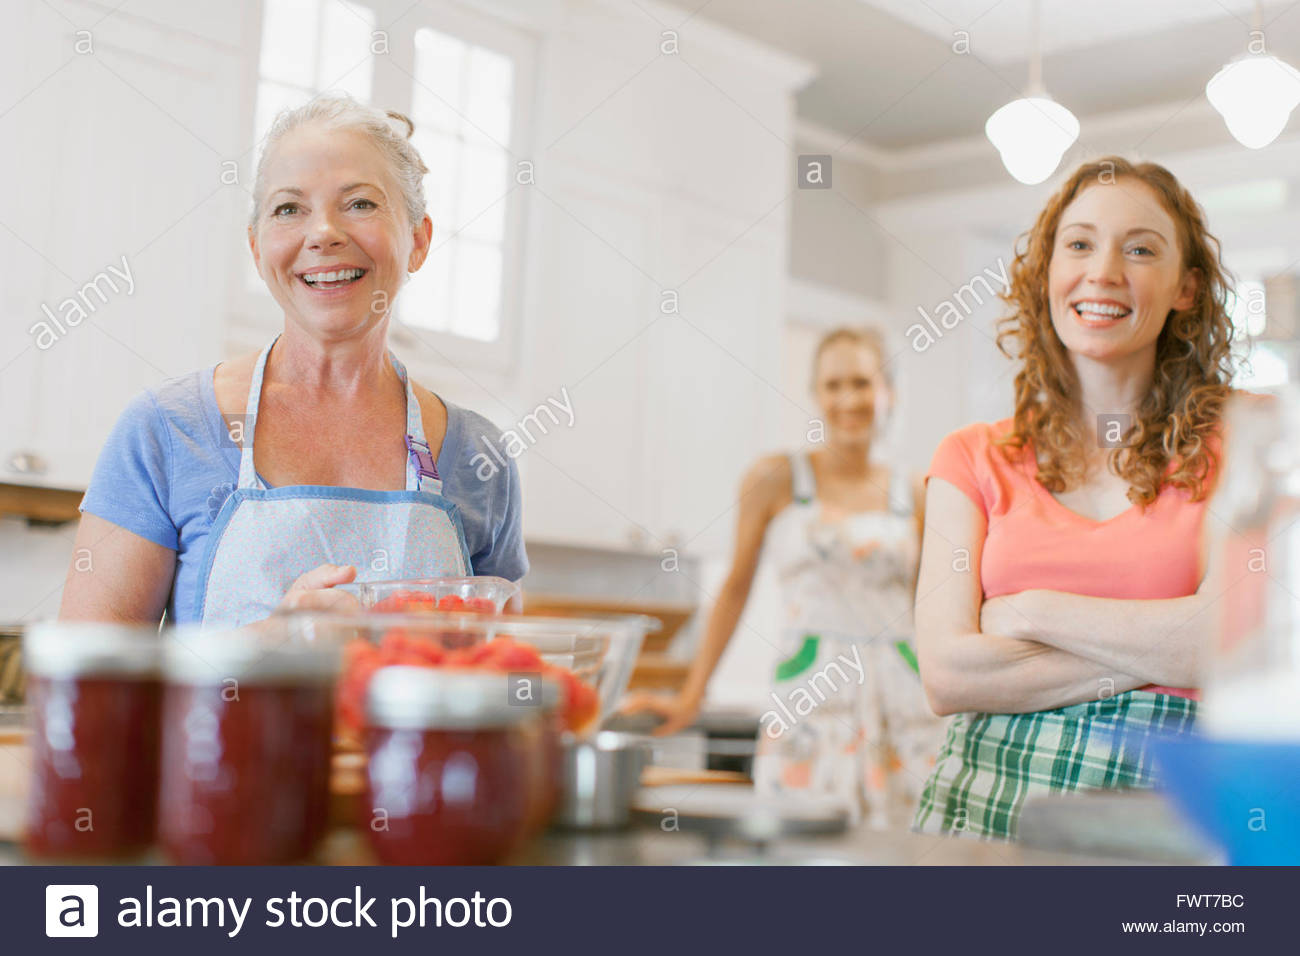 Mother and daughters in kitchen with fruit preserves. - Stock Image